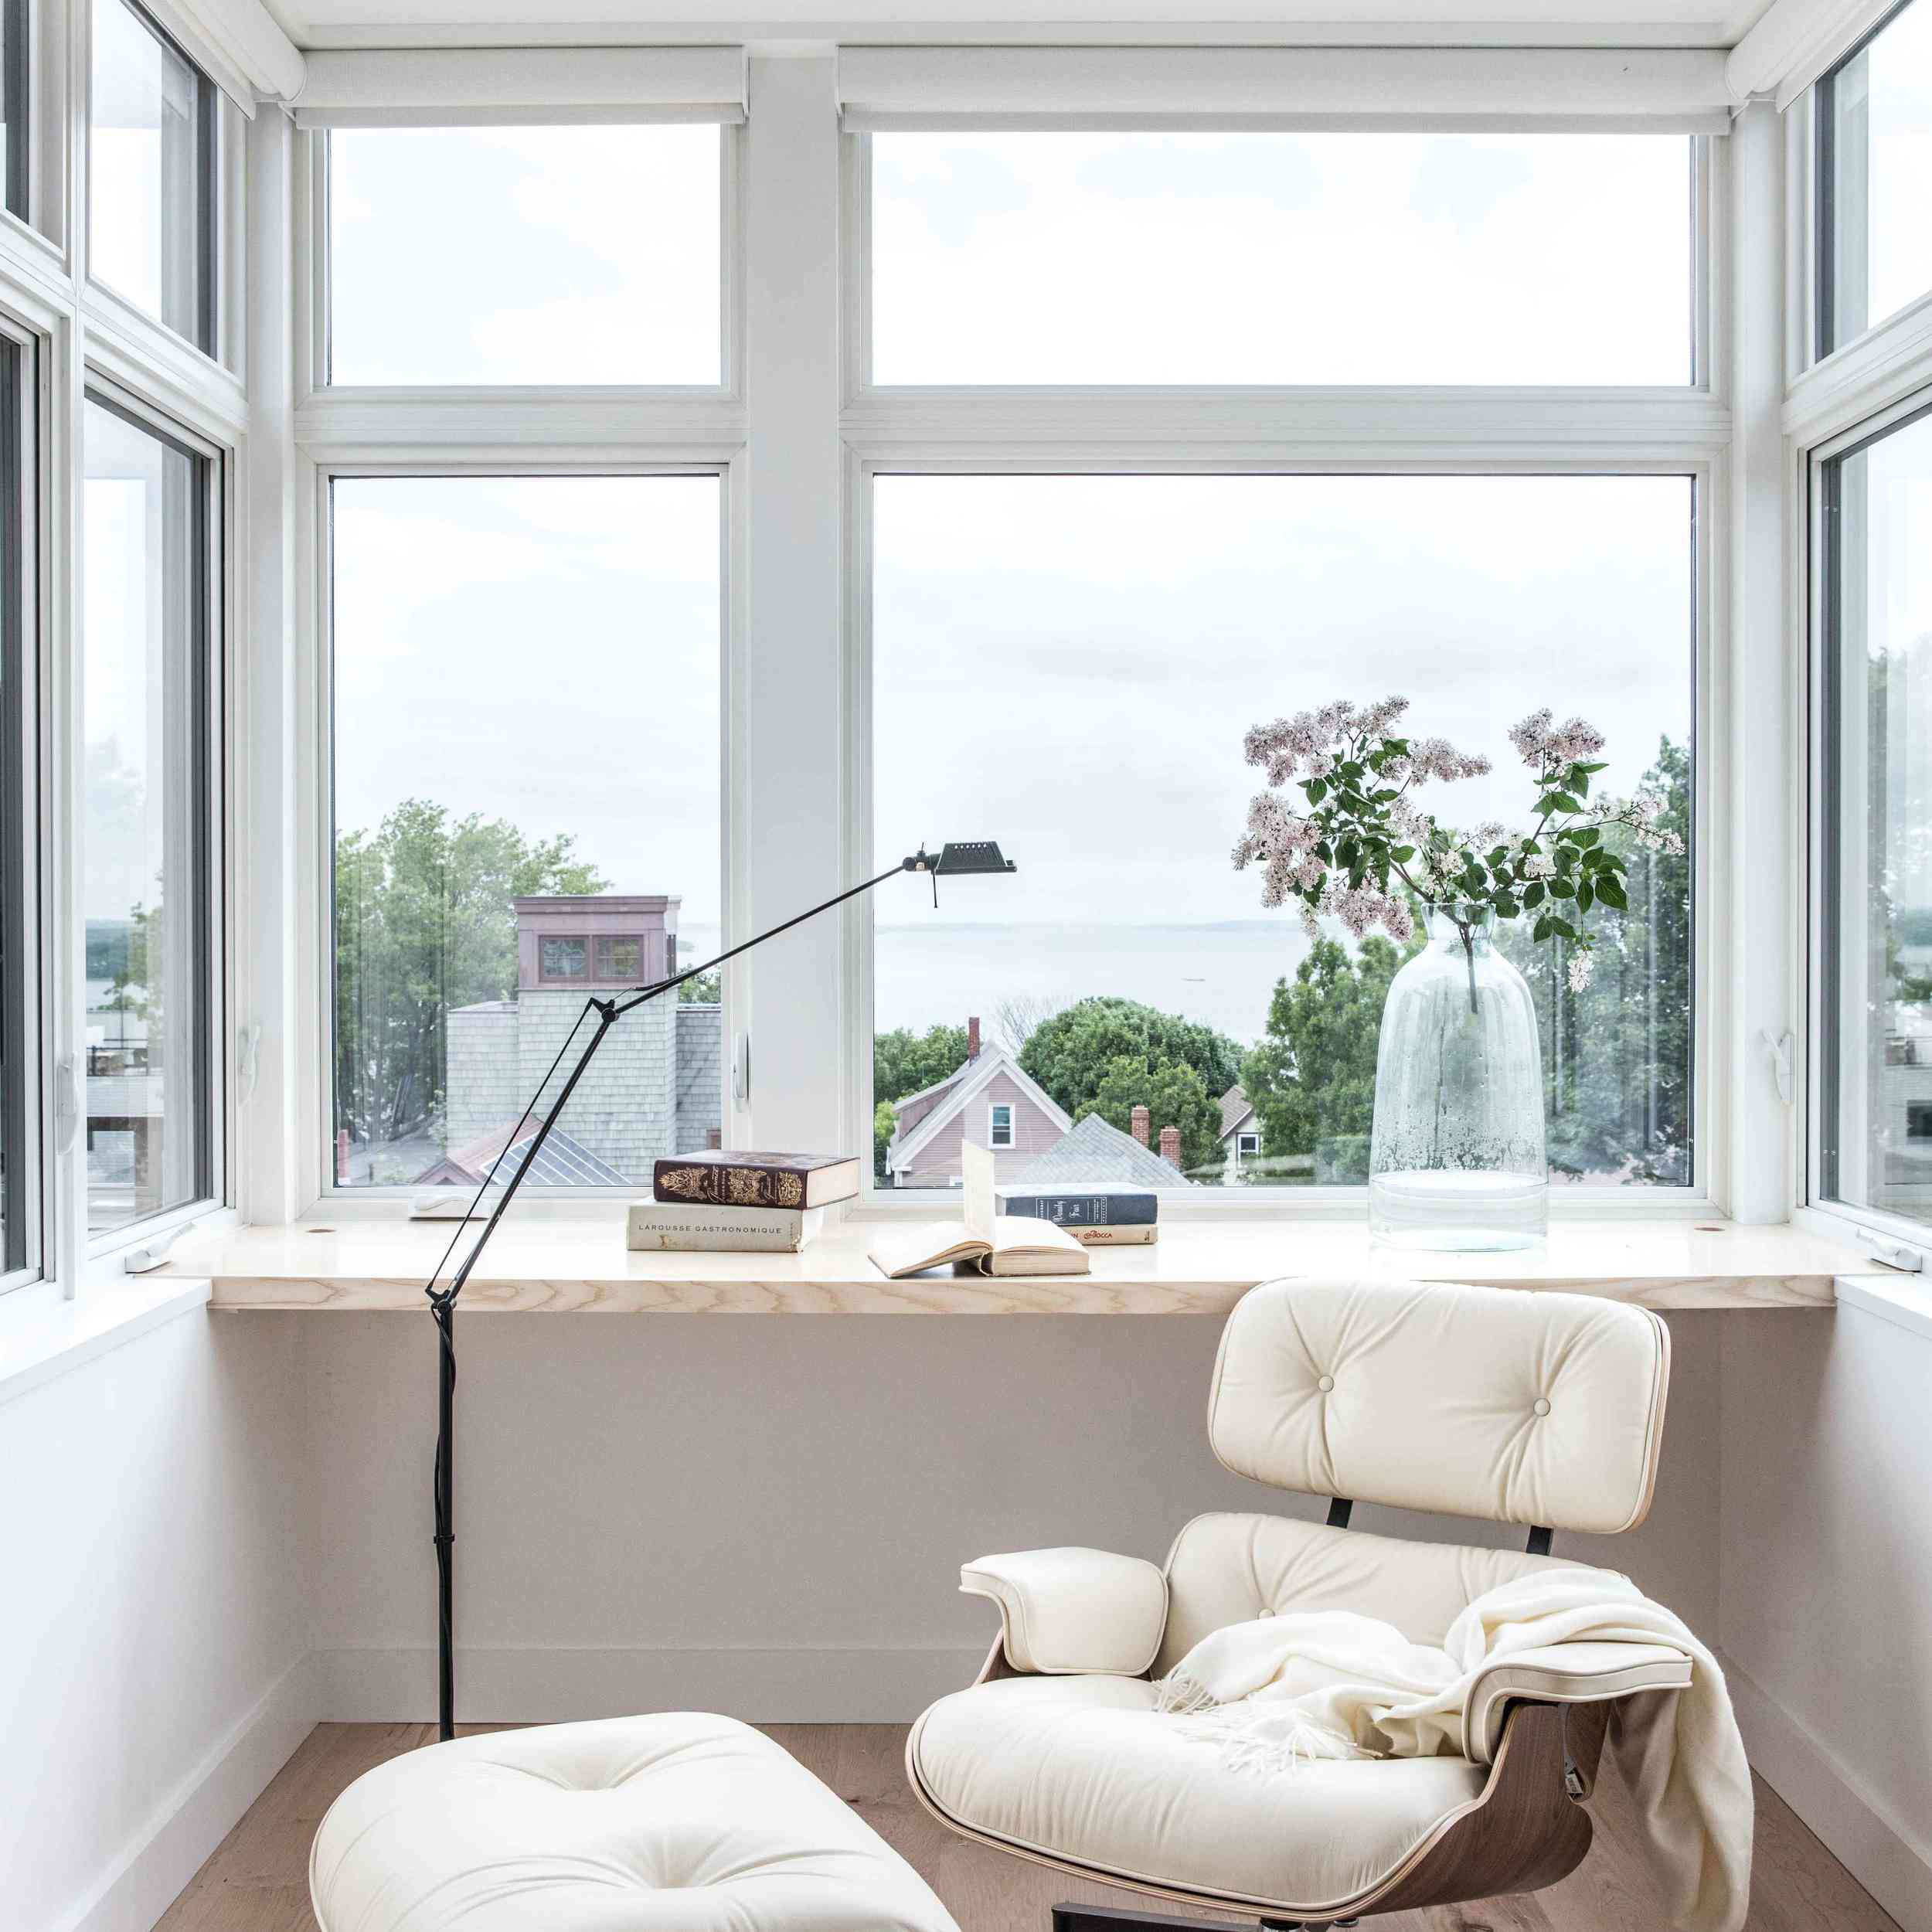 A window-lined home office outfitted with a white Eames lounge chair